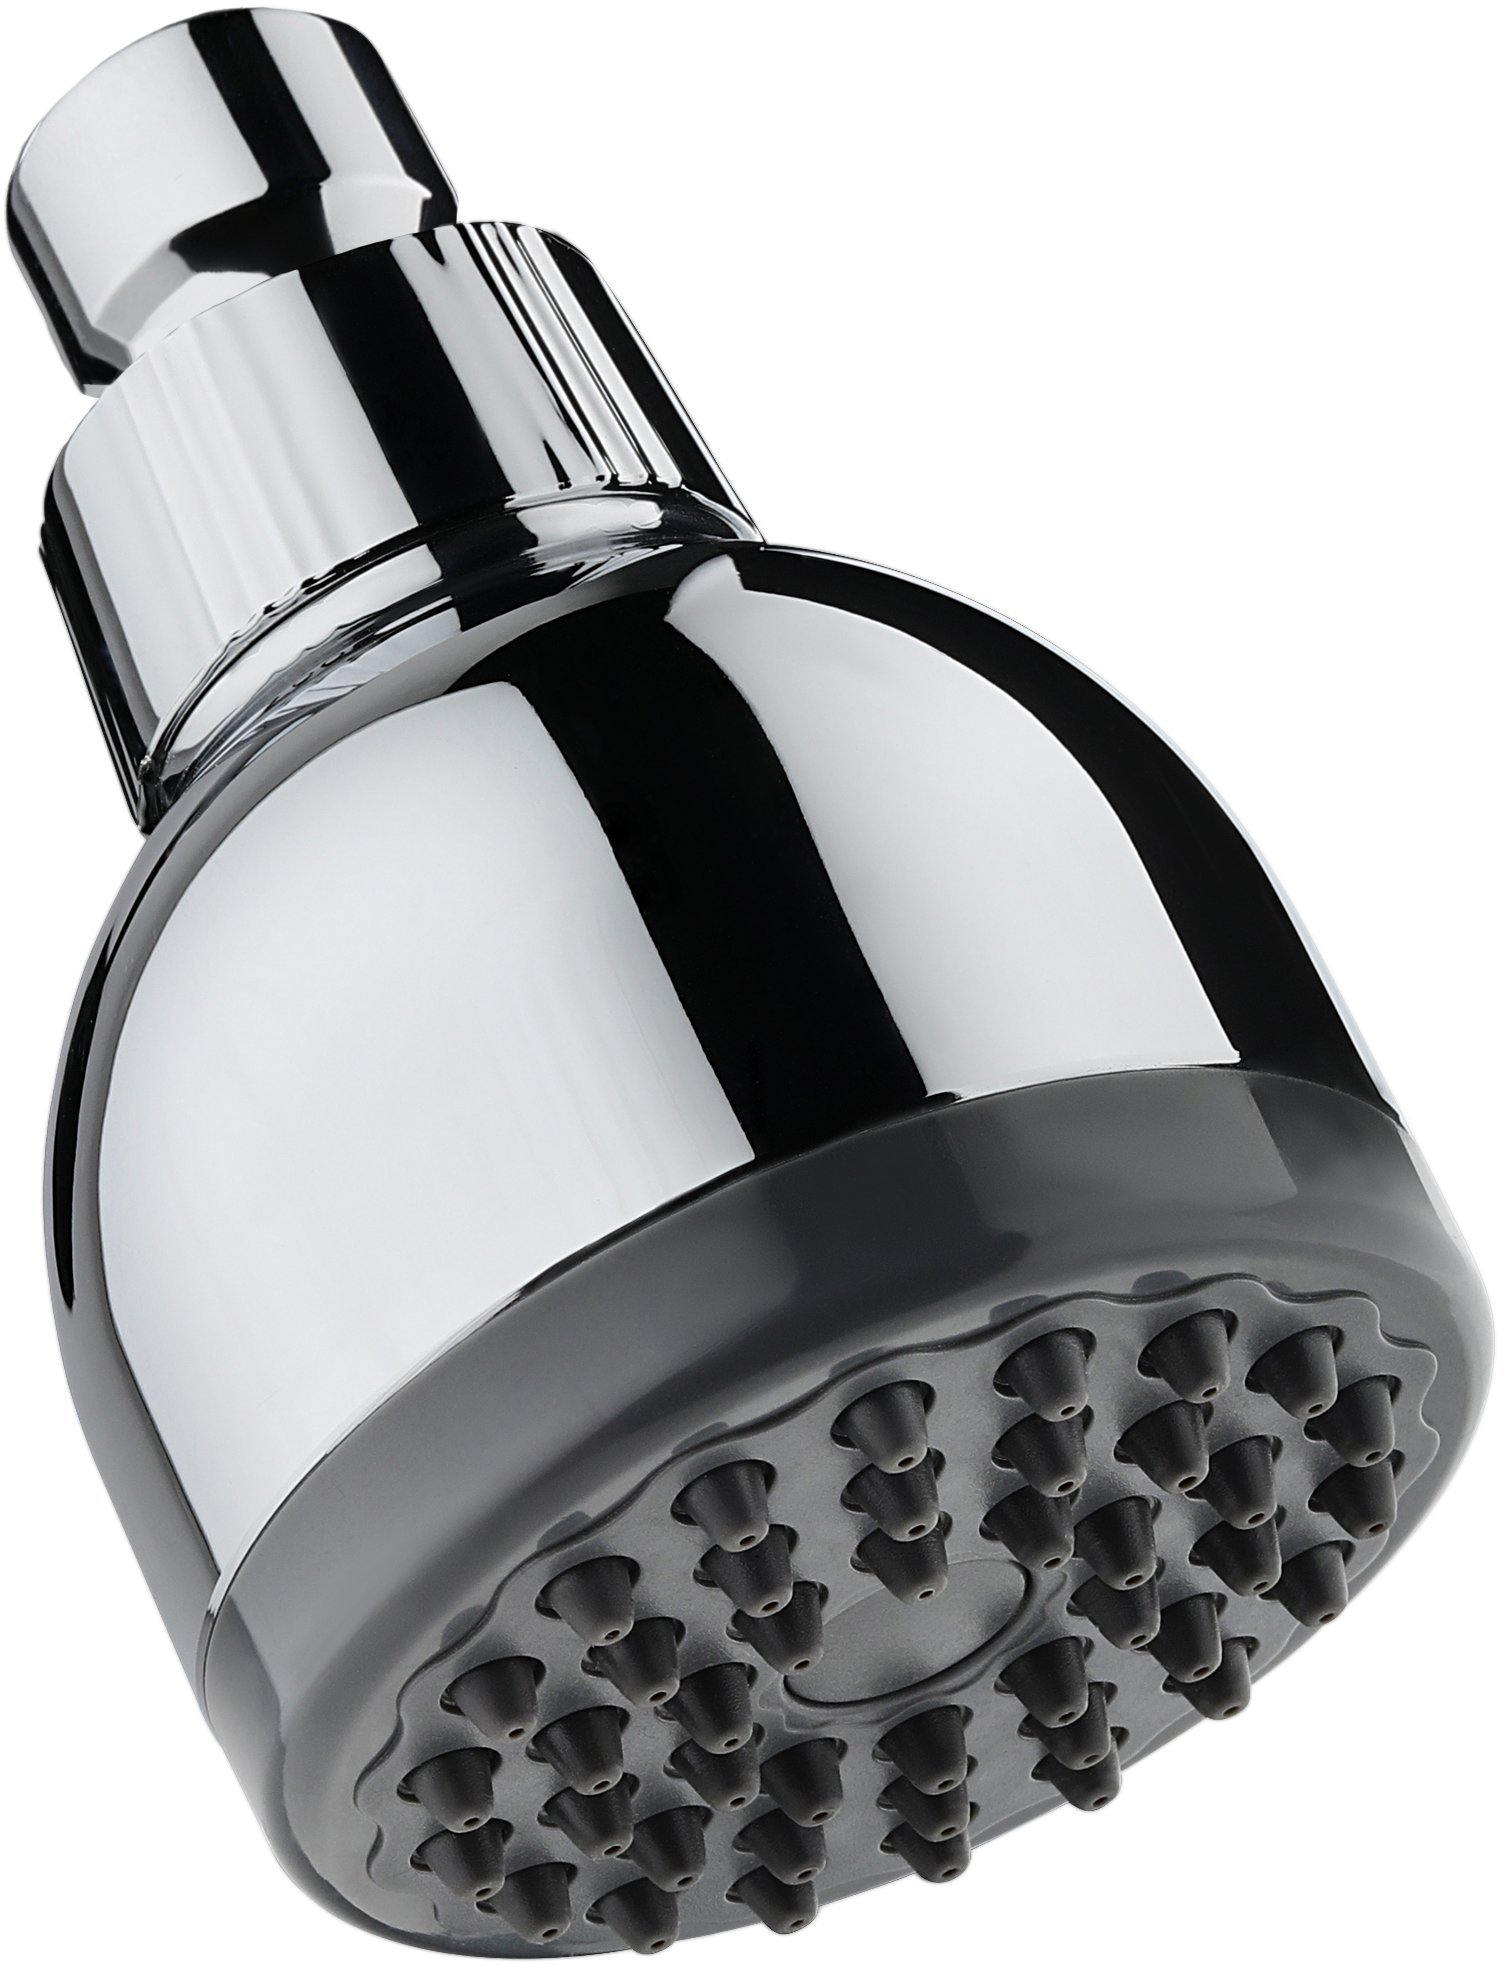 TurboSpa 3 Inch High Pressure Shower Head w/Flow Restrictor Melts Stress into Bliss at Full Power. 42 Nozzle Wide Spray High Flow Showerhead Drenches You Fast, No Dry Spots Guaranteed - Chrome